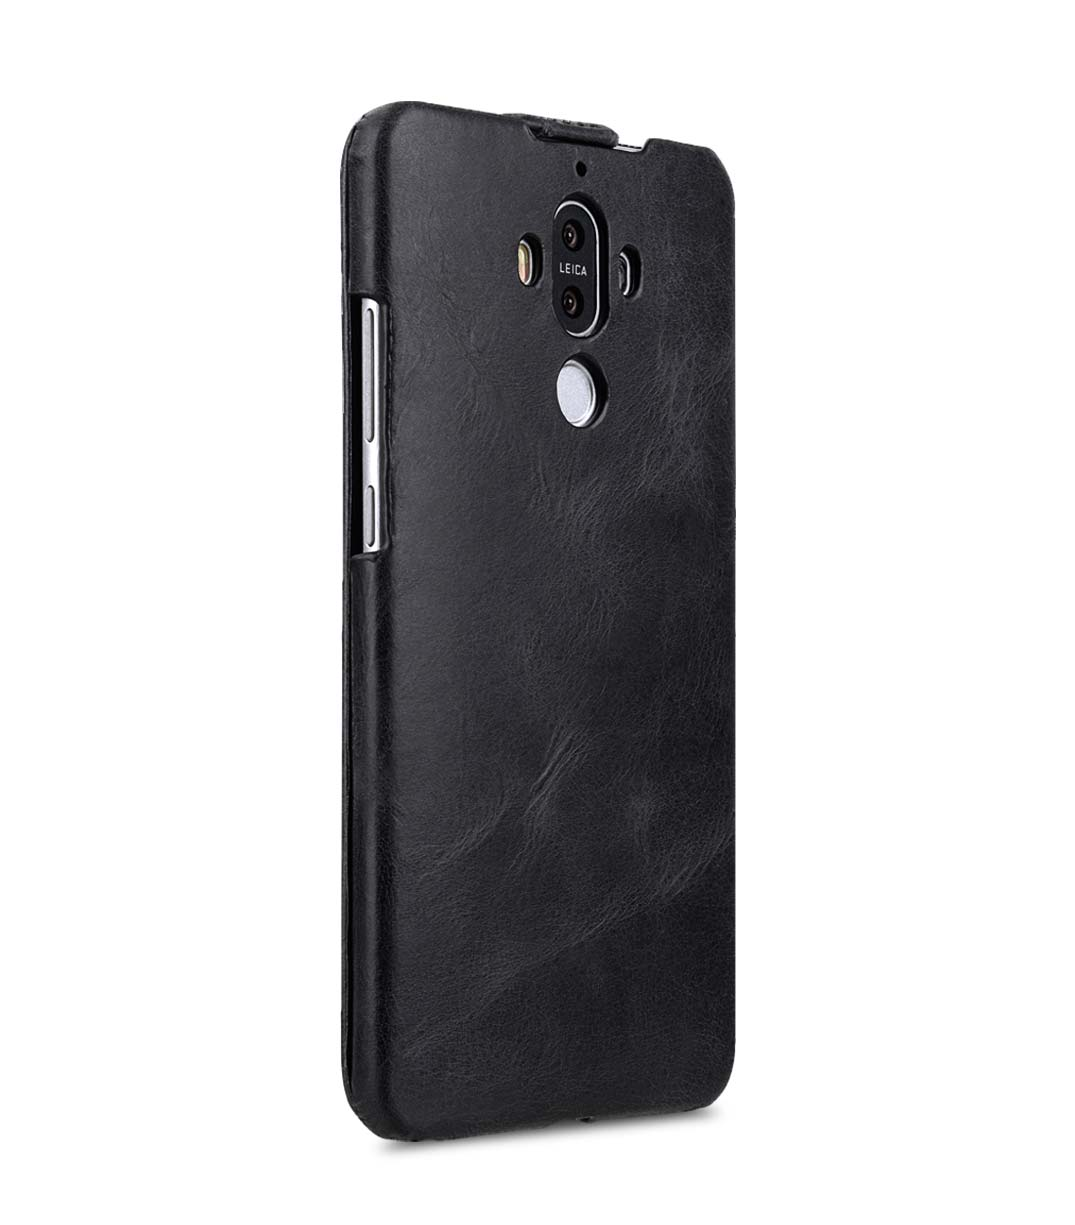 Premium Leather Case for Huawei Mate 9 - Jacka Type (Vintage Black)